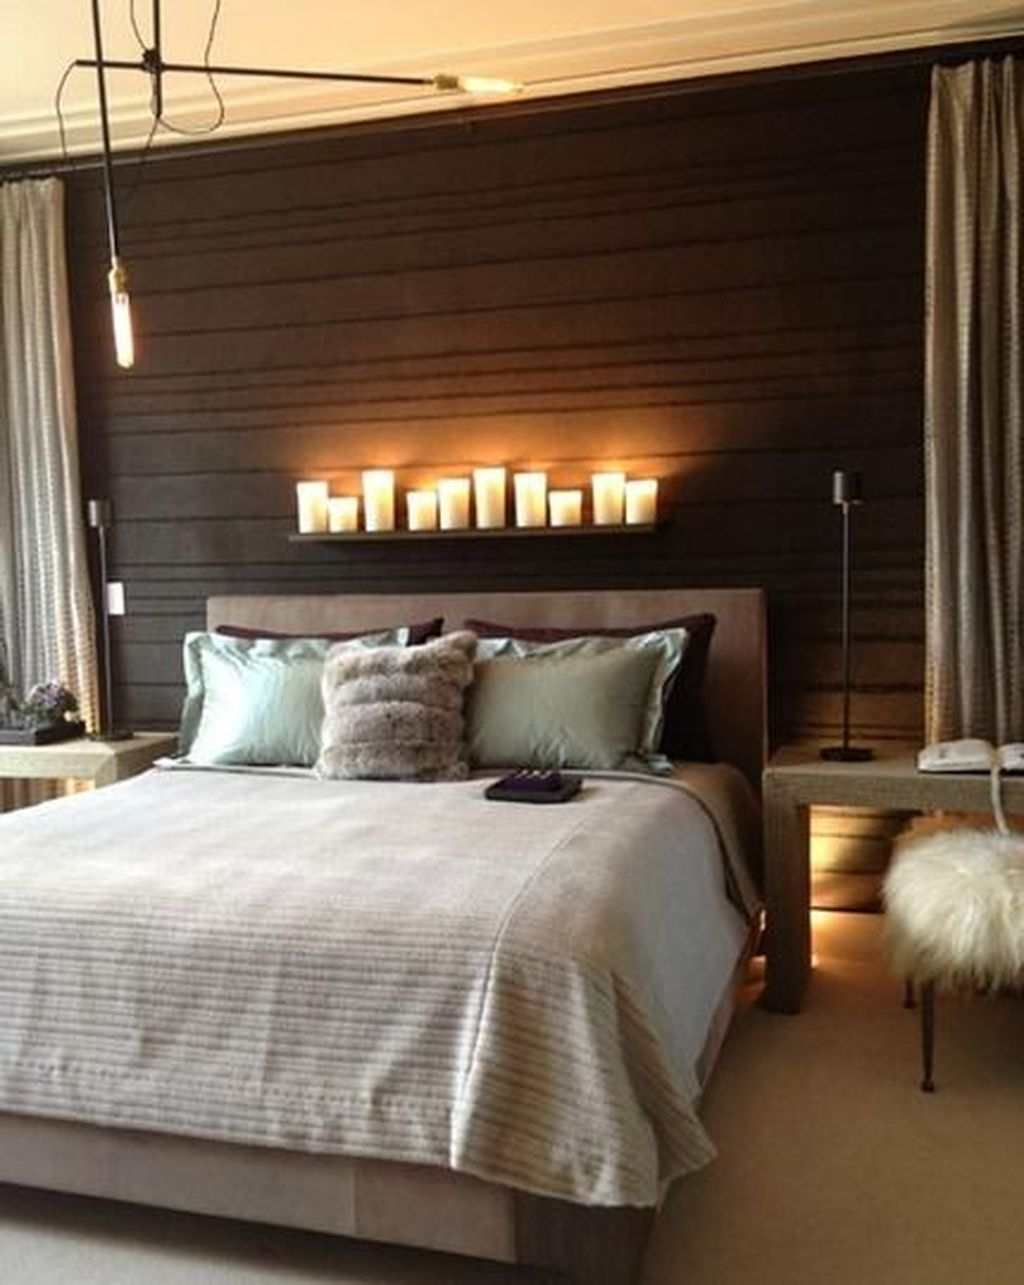 Make Your Bedroom More Romantic With These Romantic Bedroom Decorations 07